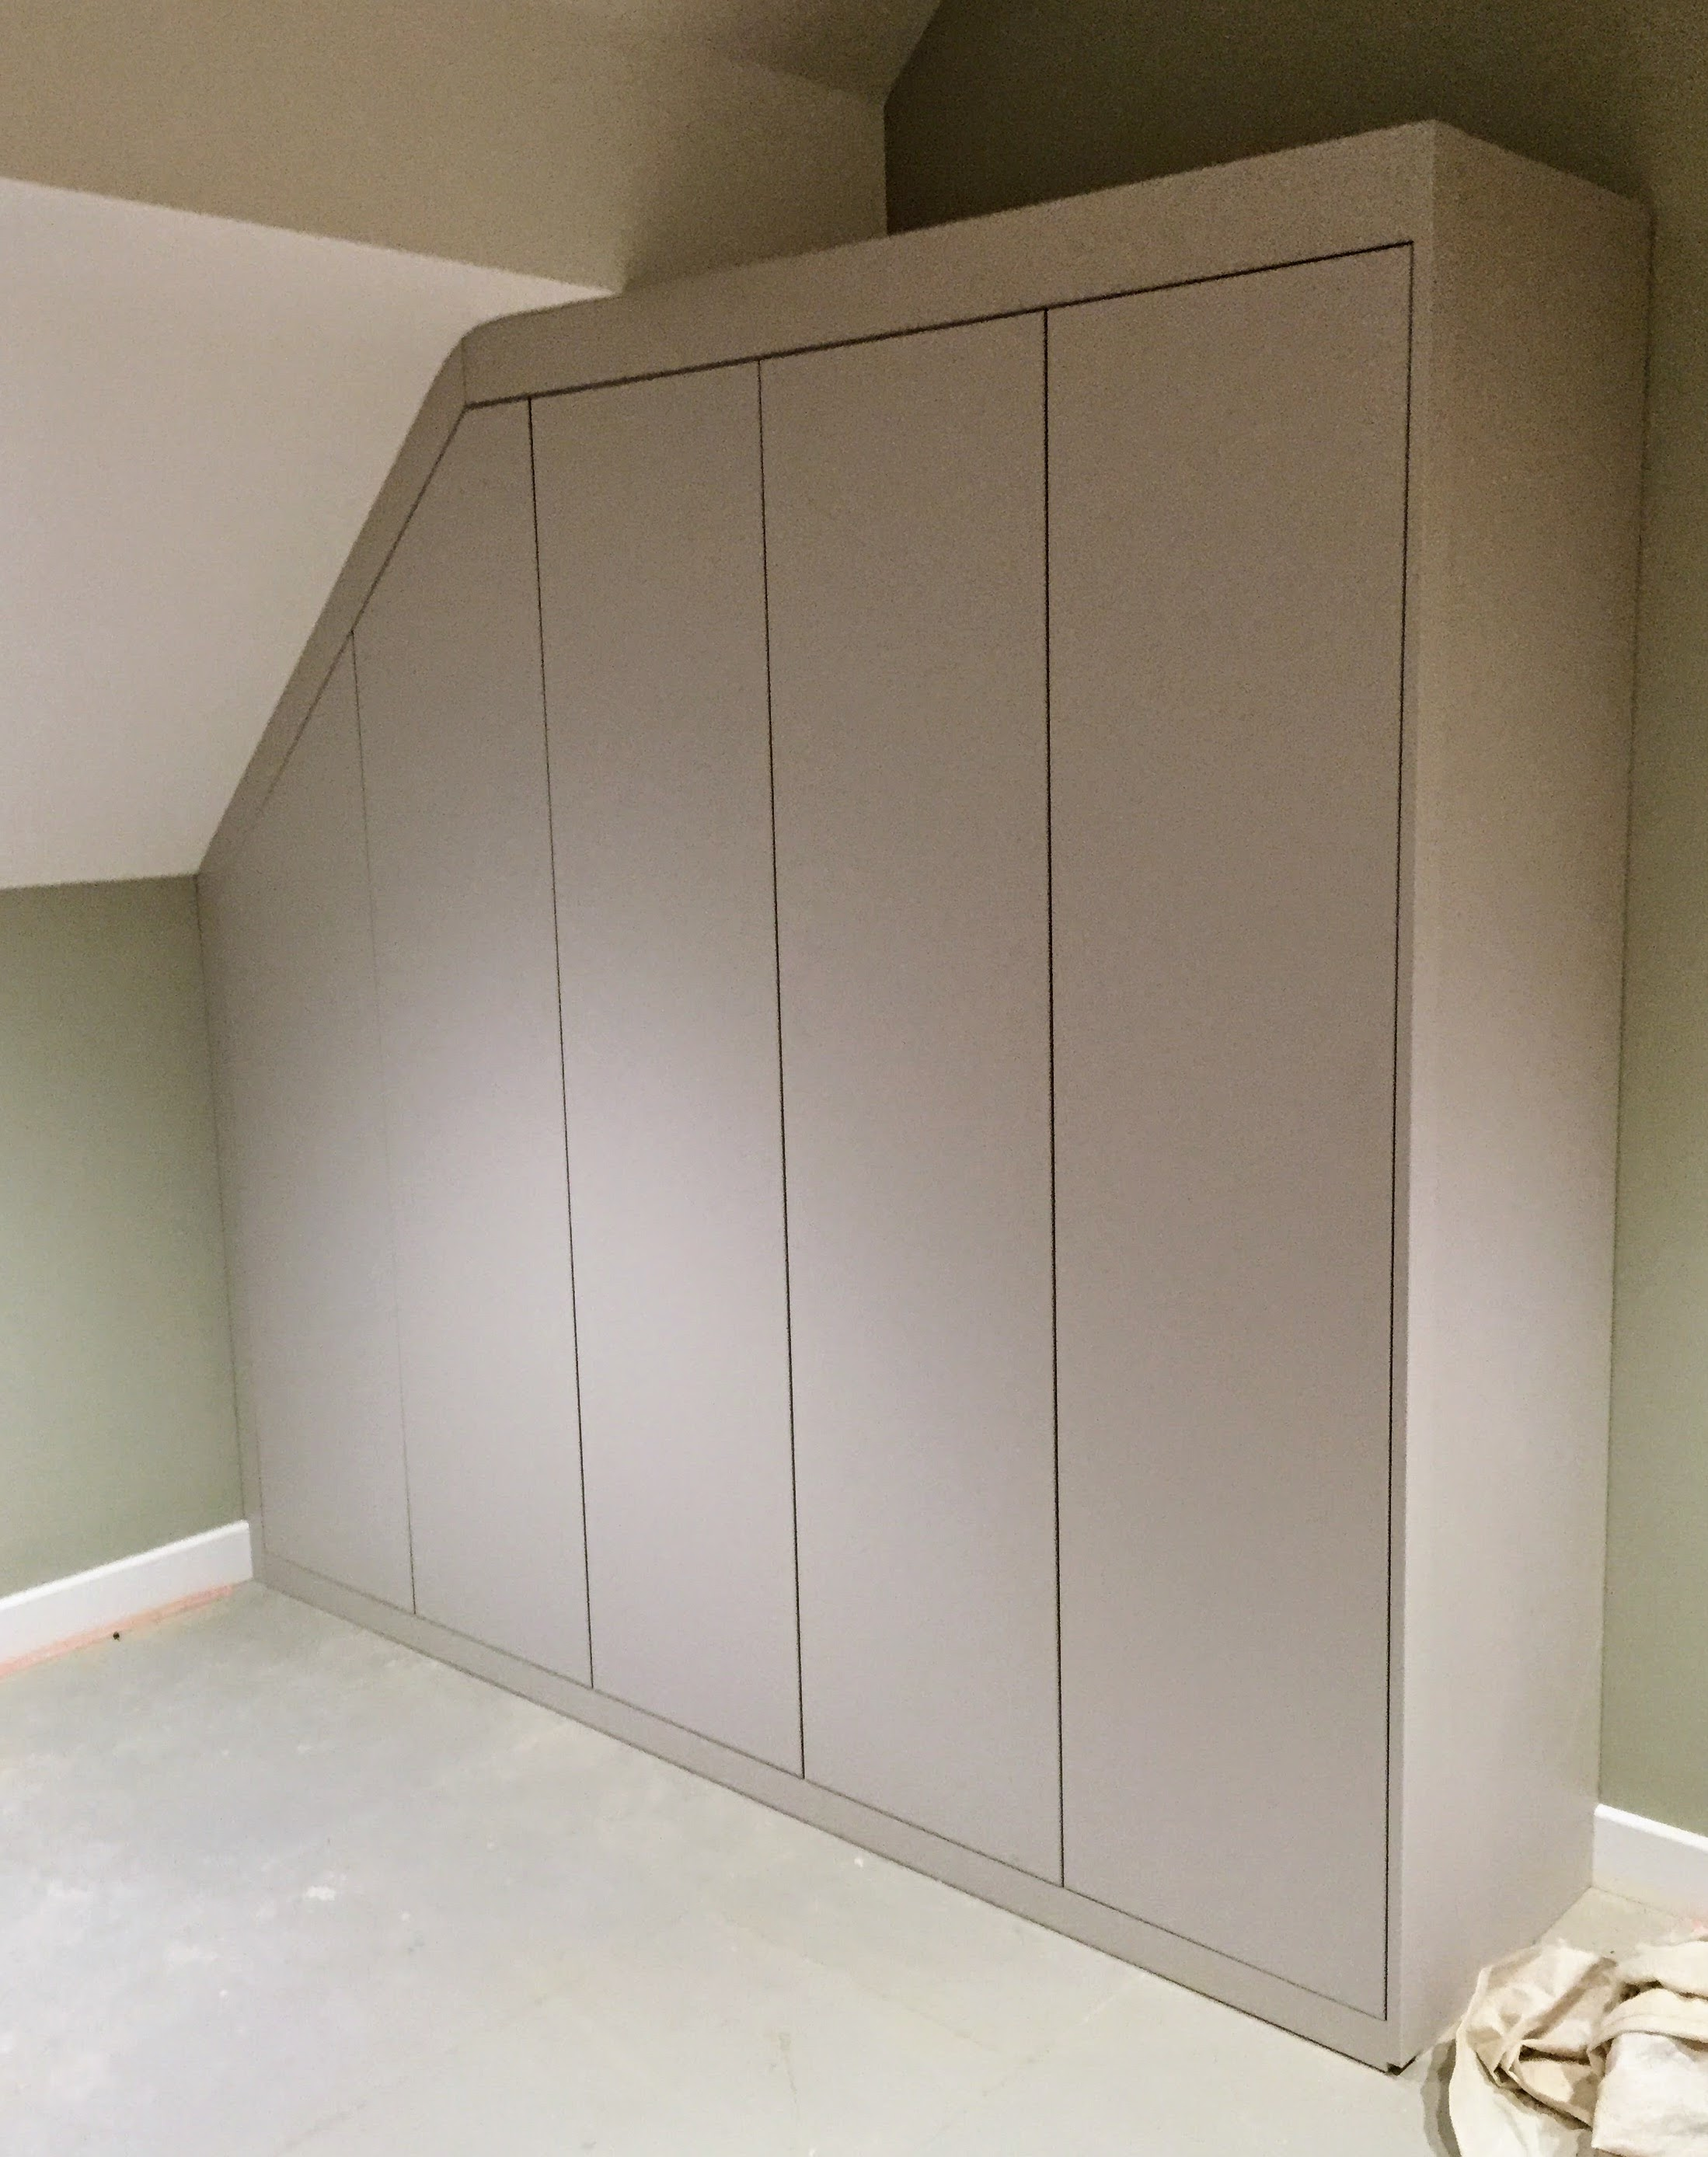 Wardrobe-push open doors sans handle